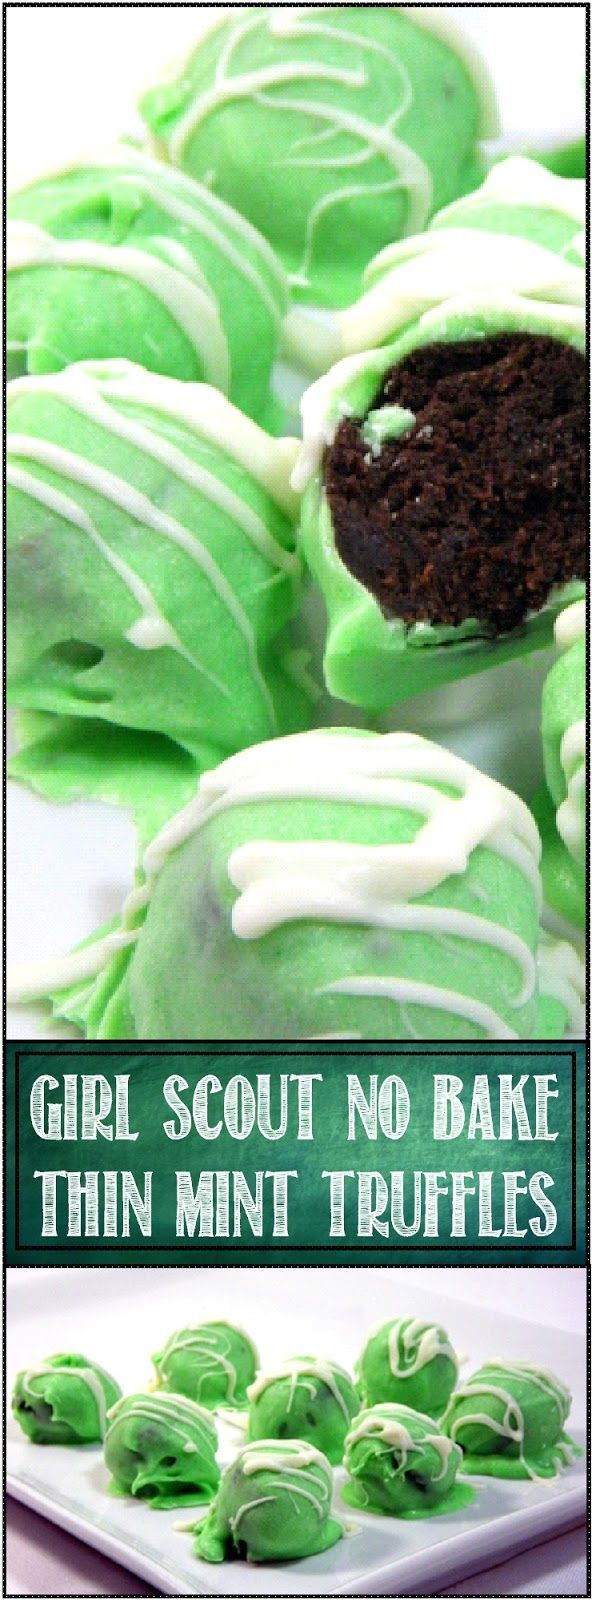 Scout NO BAKE Thin Mint Truffles - EASY PEASY! Indeed... All the flavors of the hit classic Girl Scout Thin Mint Cookie